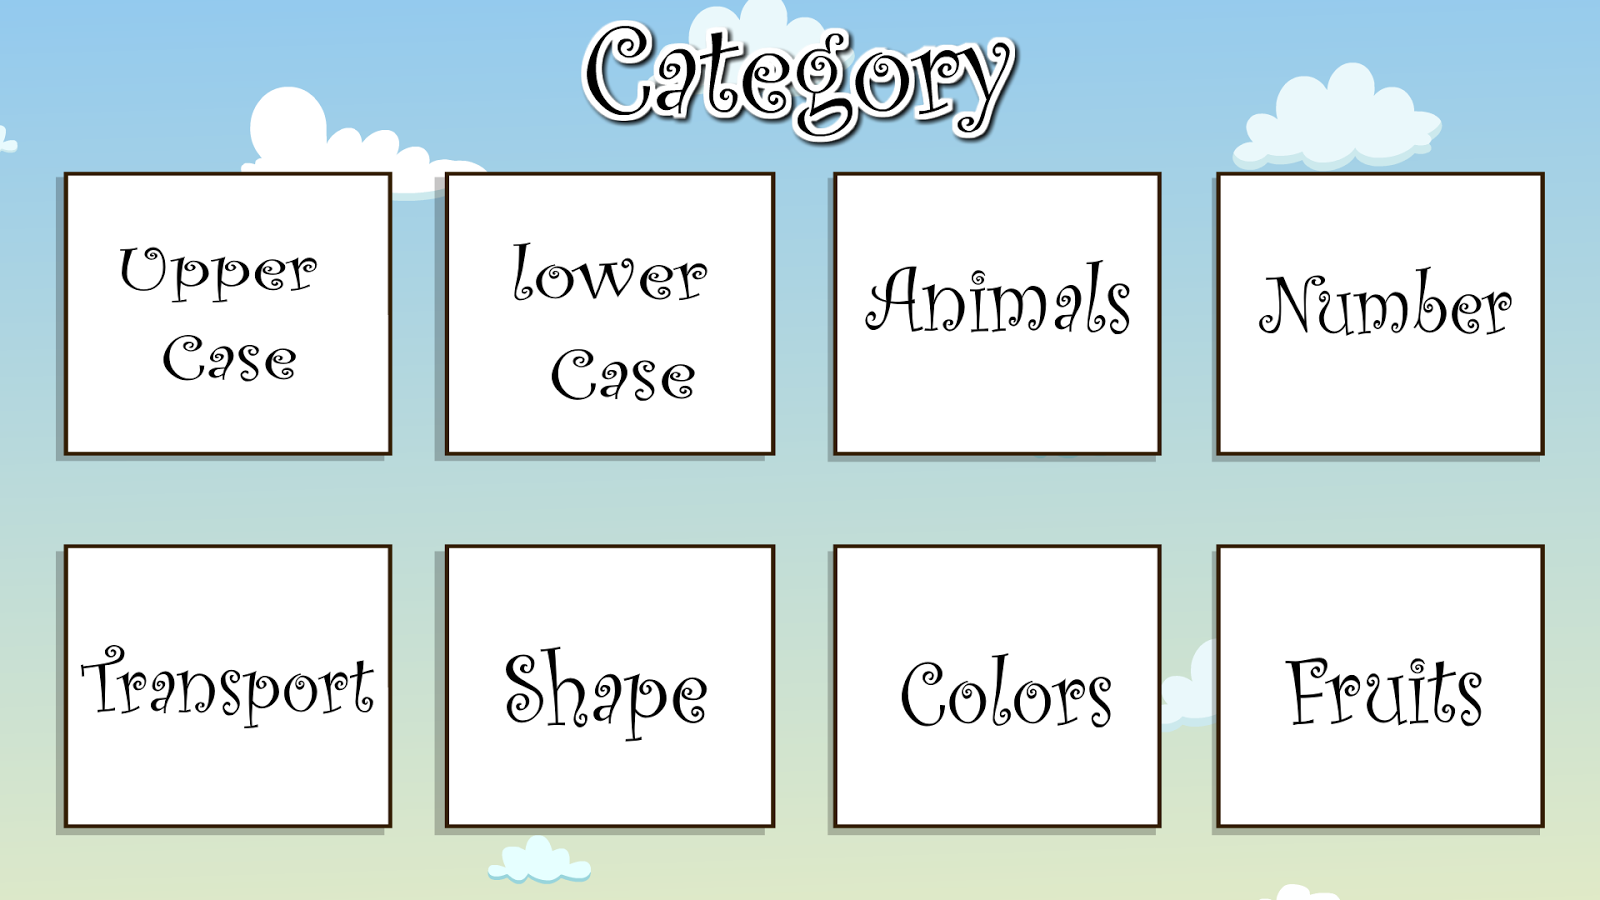 Worksheet Cursive Alphabets cursive alphabets android apps on google play screenshot